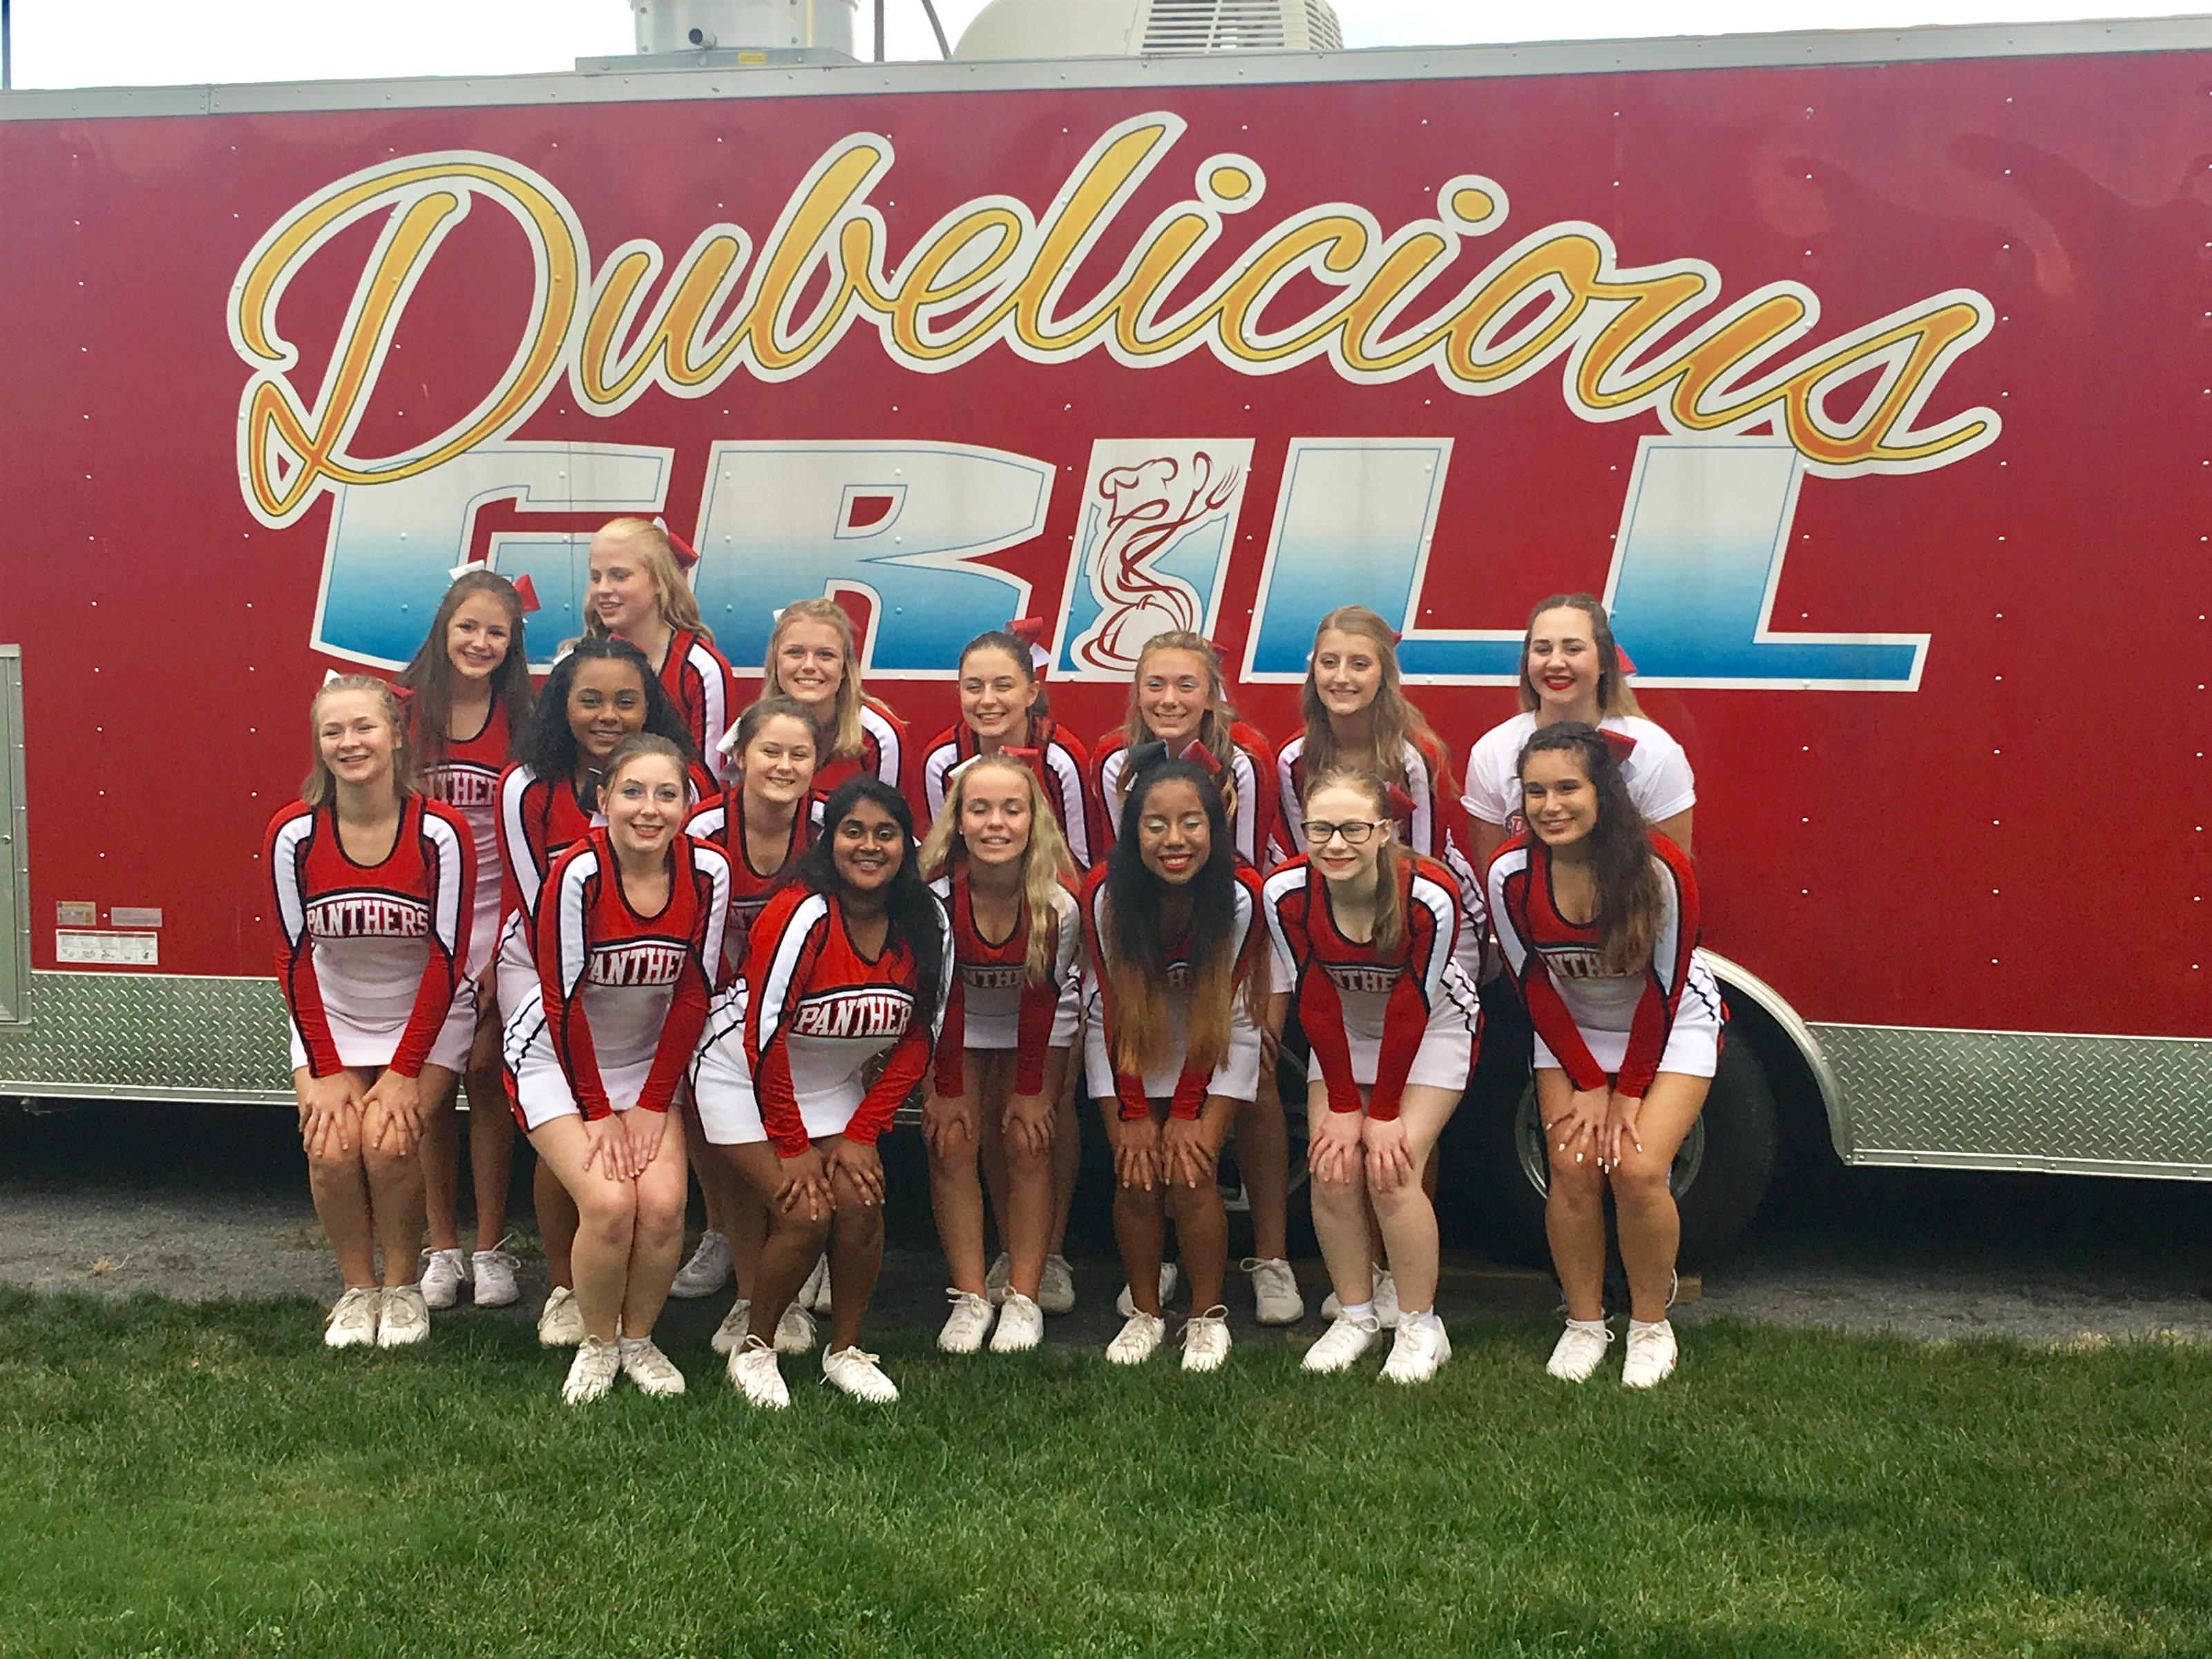 Cheerleading team outside of dubelicious grille truck